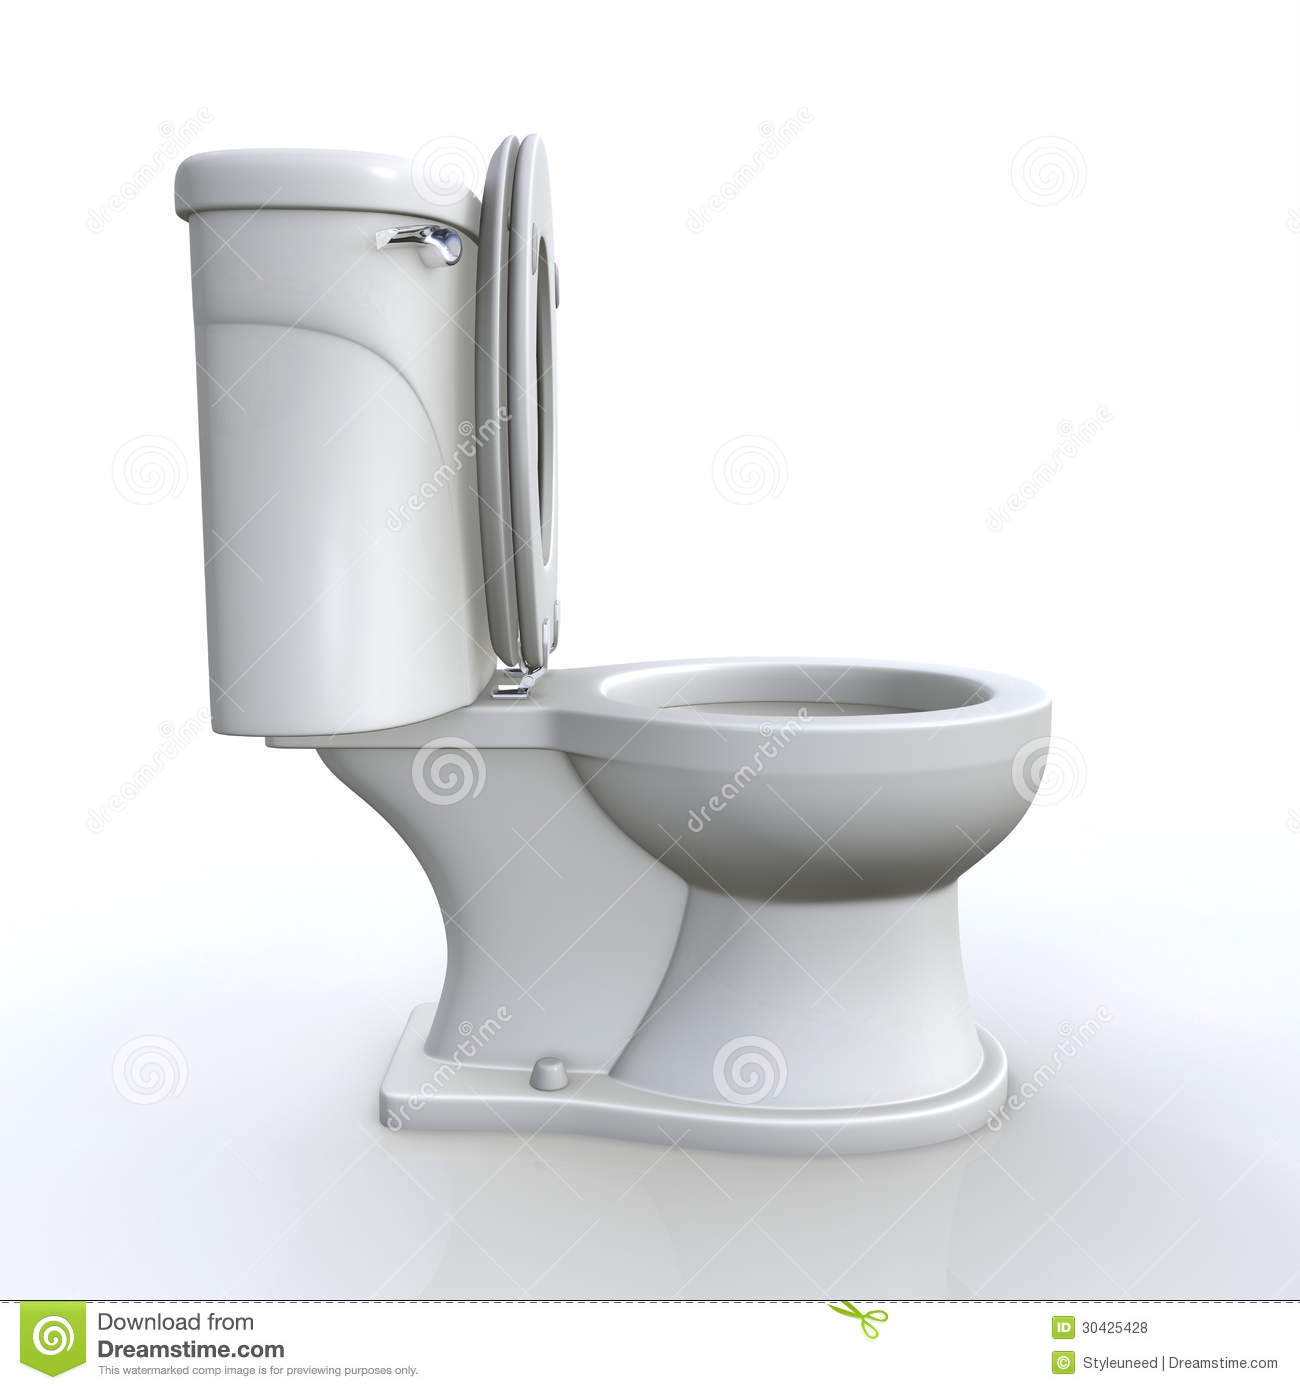 Illustration of a white open toilet, isolated on white. Side view.